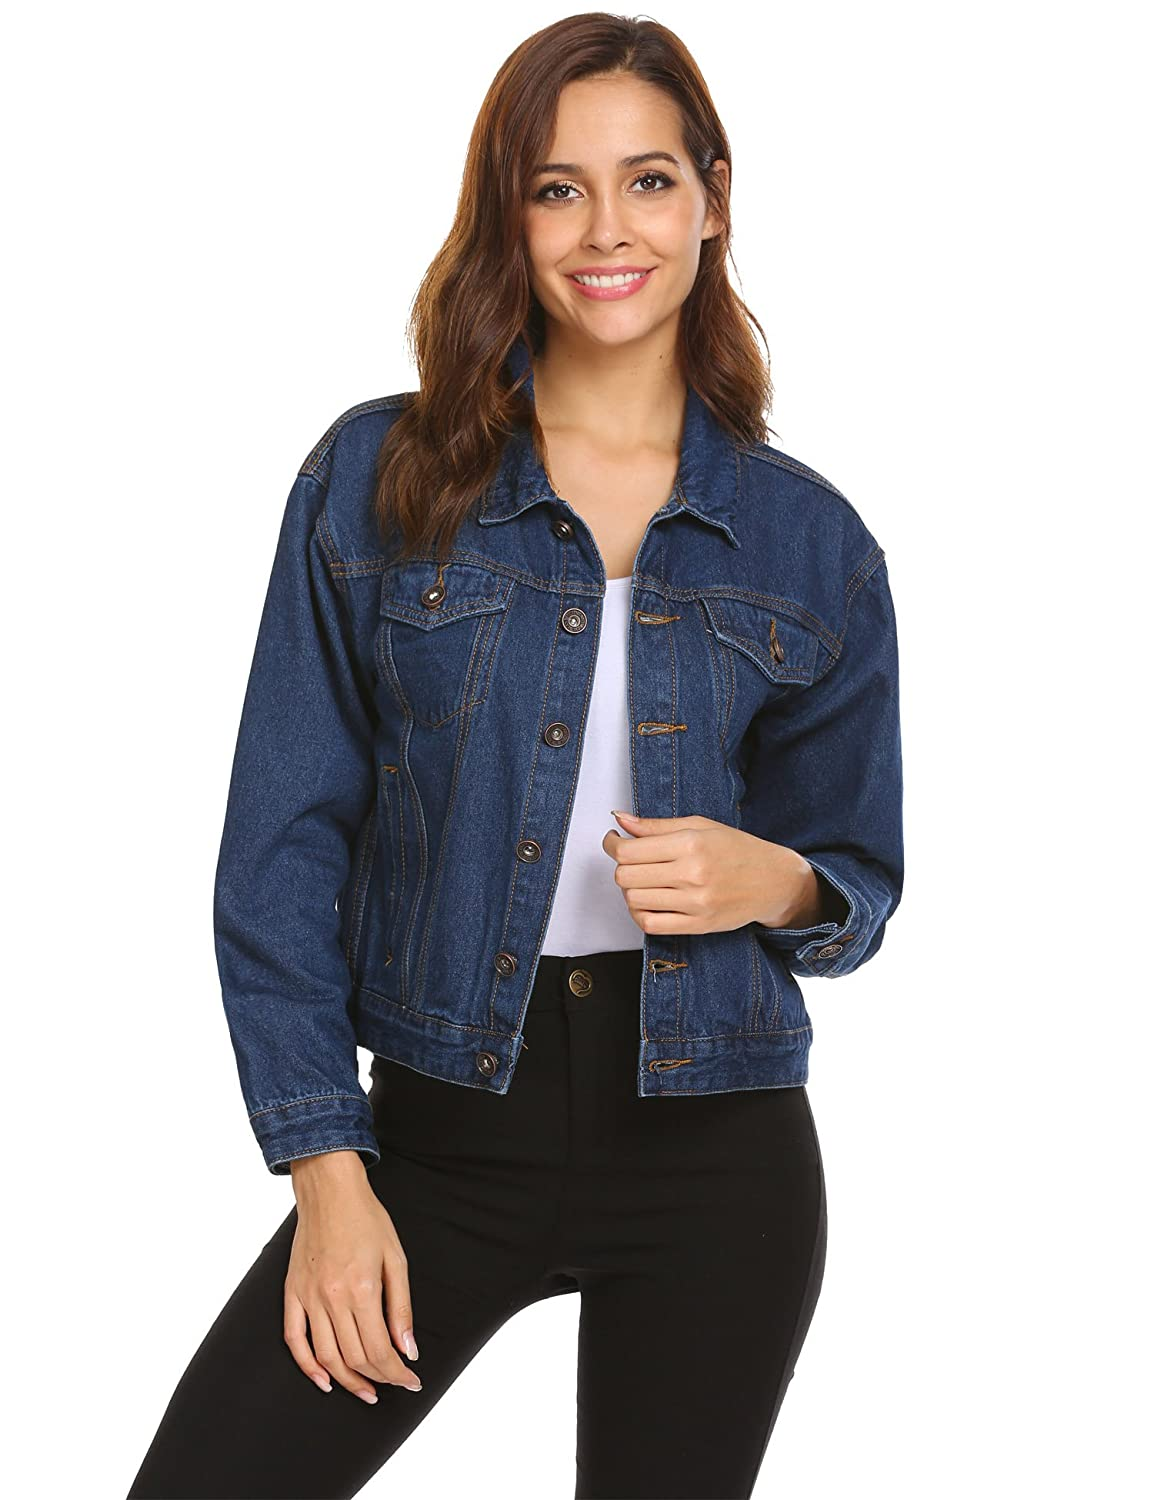 87f9f66551cd Other Jeans are 100% Cotton EASTHER Classic Denim Jean Jacket for  Women.Classic Lapel Button Down Trucker Jacket with lapel, flap button  chest pockets ...